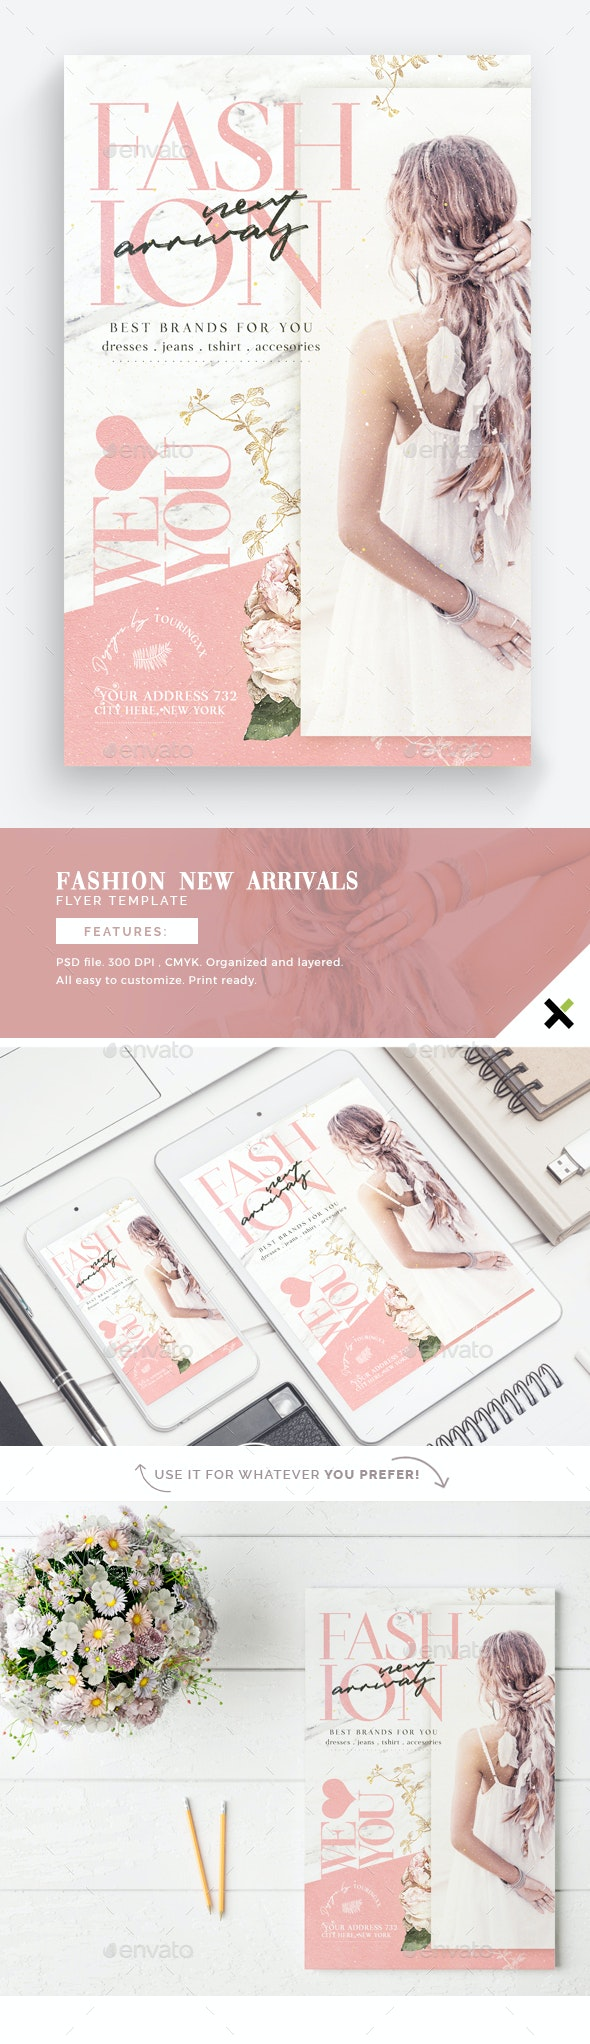 Fashion New Arrivals Flyer Template - Flyers Print Templates